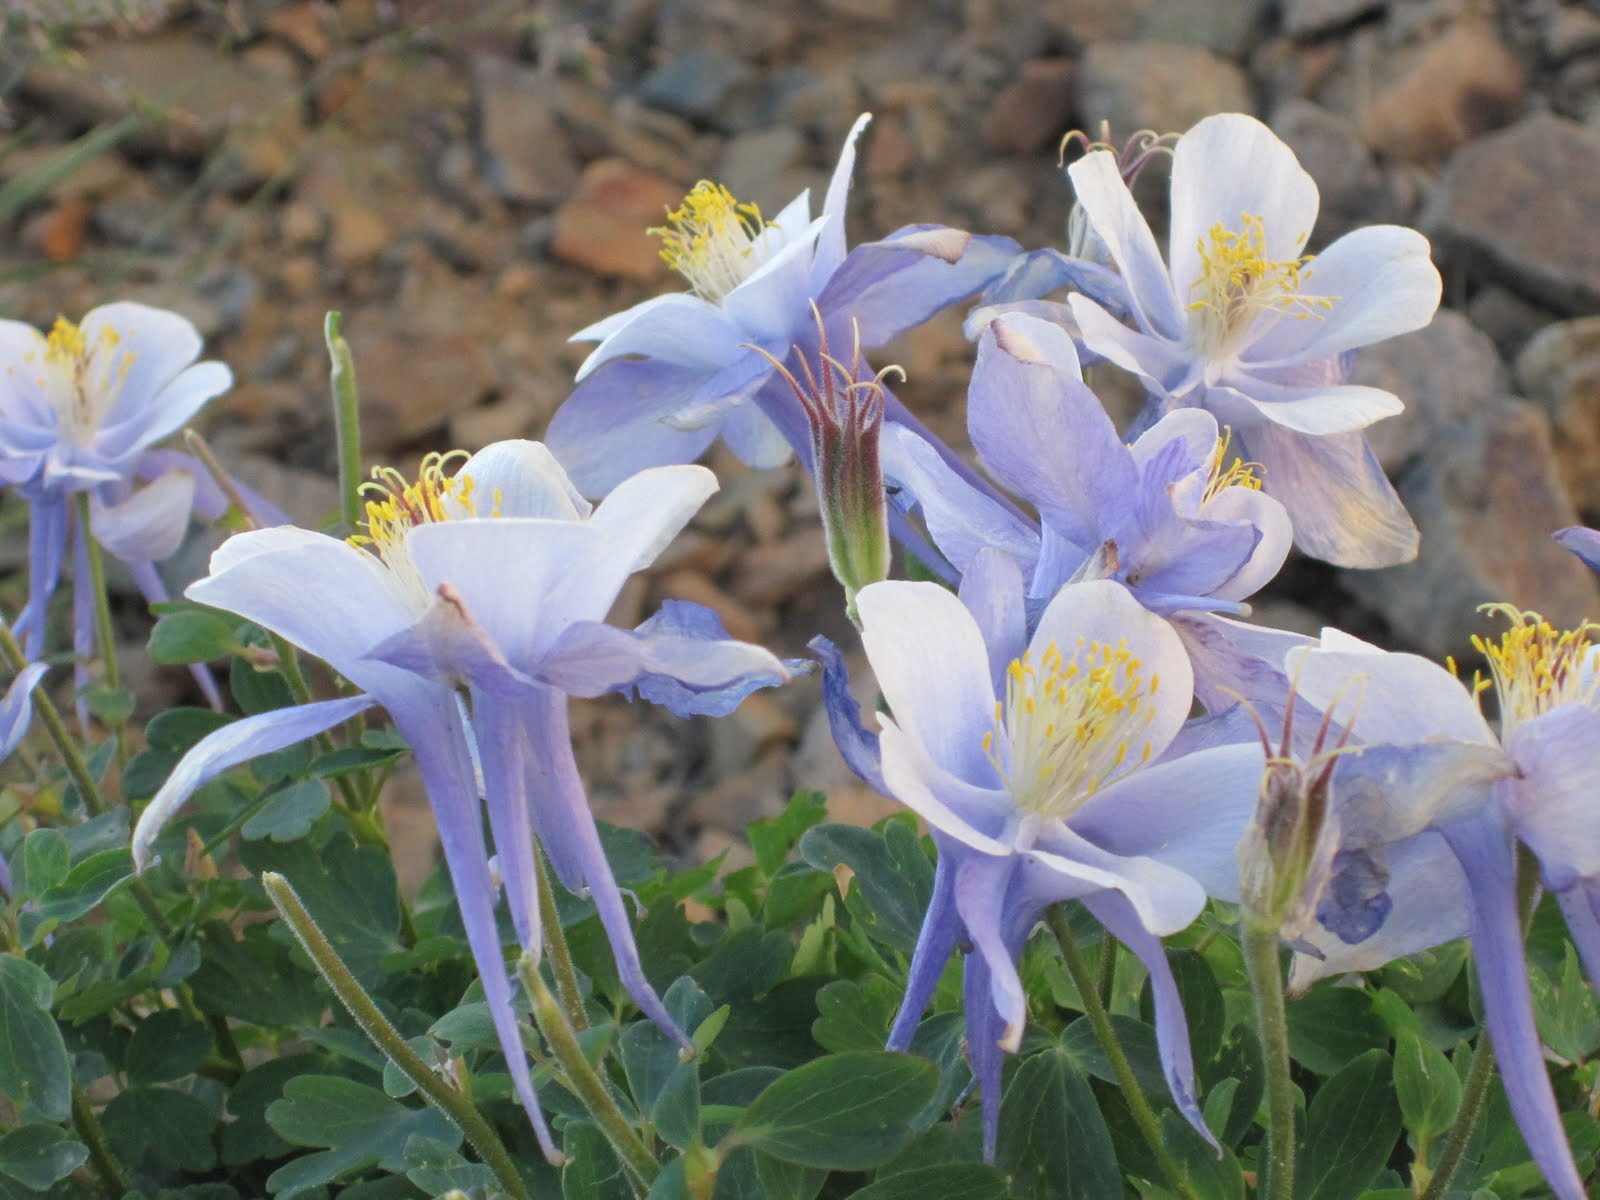 Cannundrums colorado blue columbine it flowers from june to august high in the mountains from western montana to northern arizona and northern new mexico izmirmasajfo